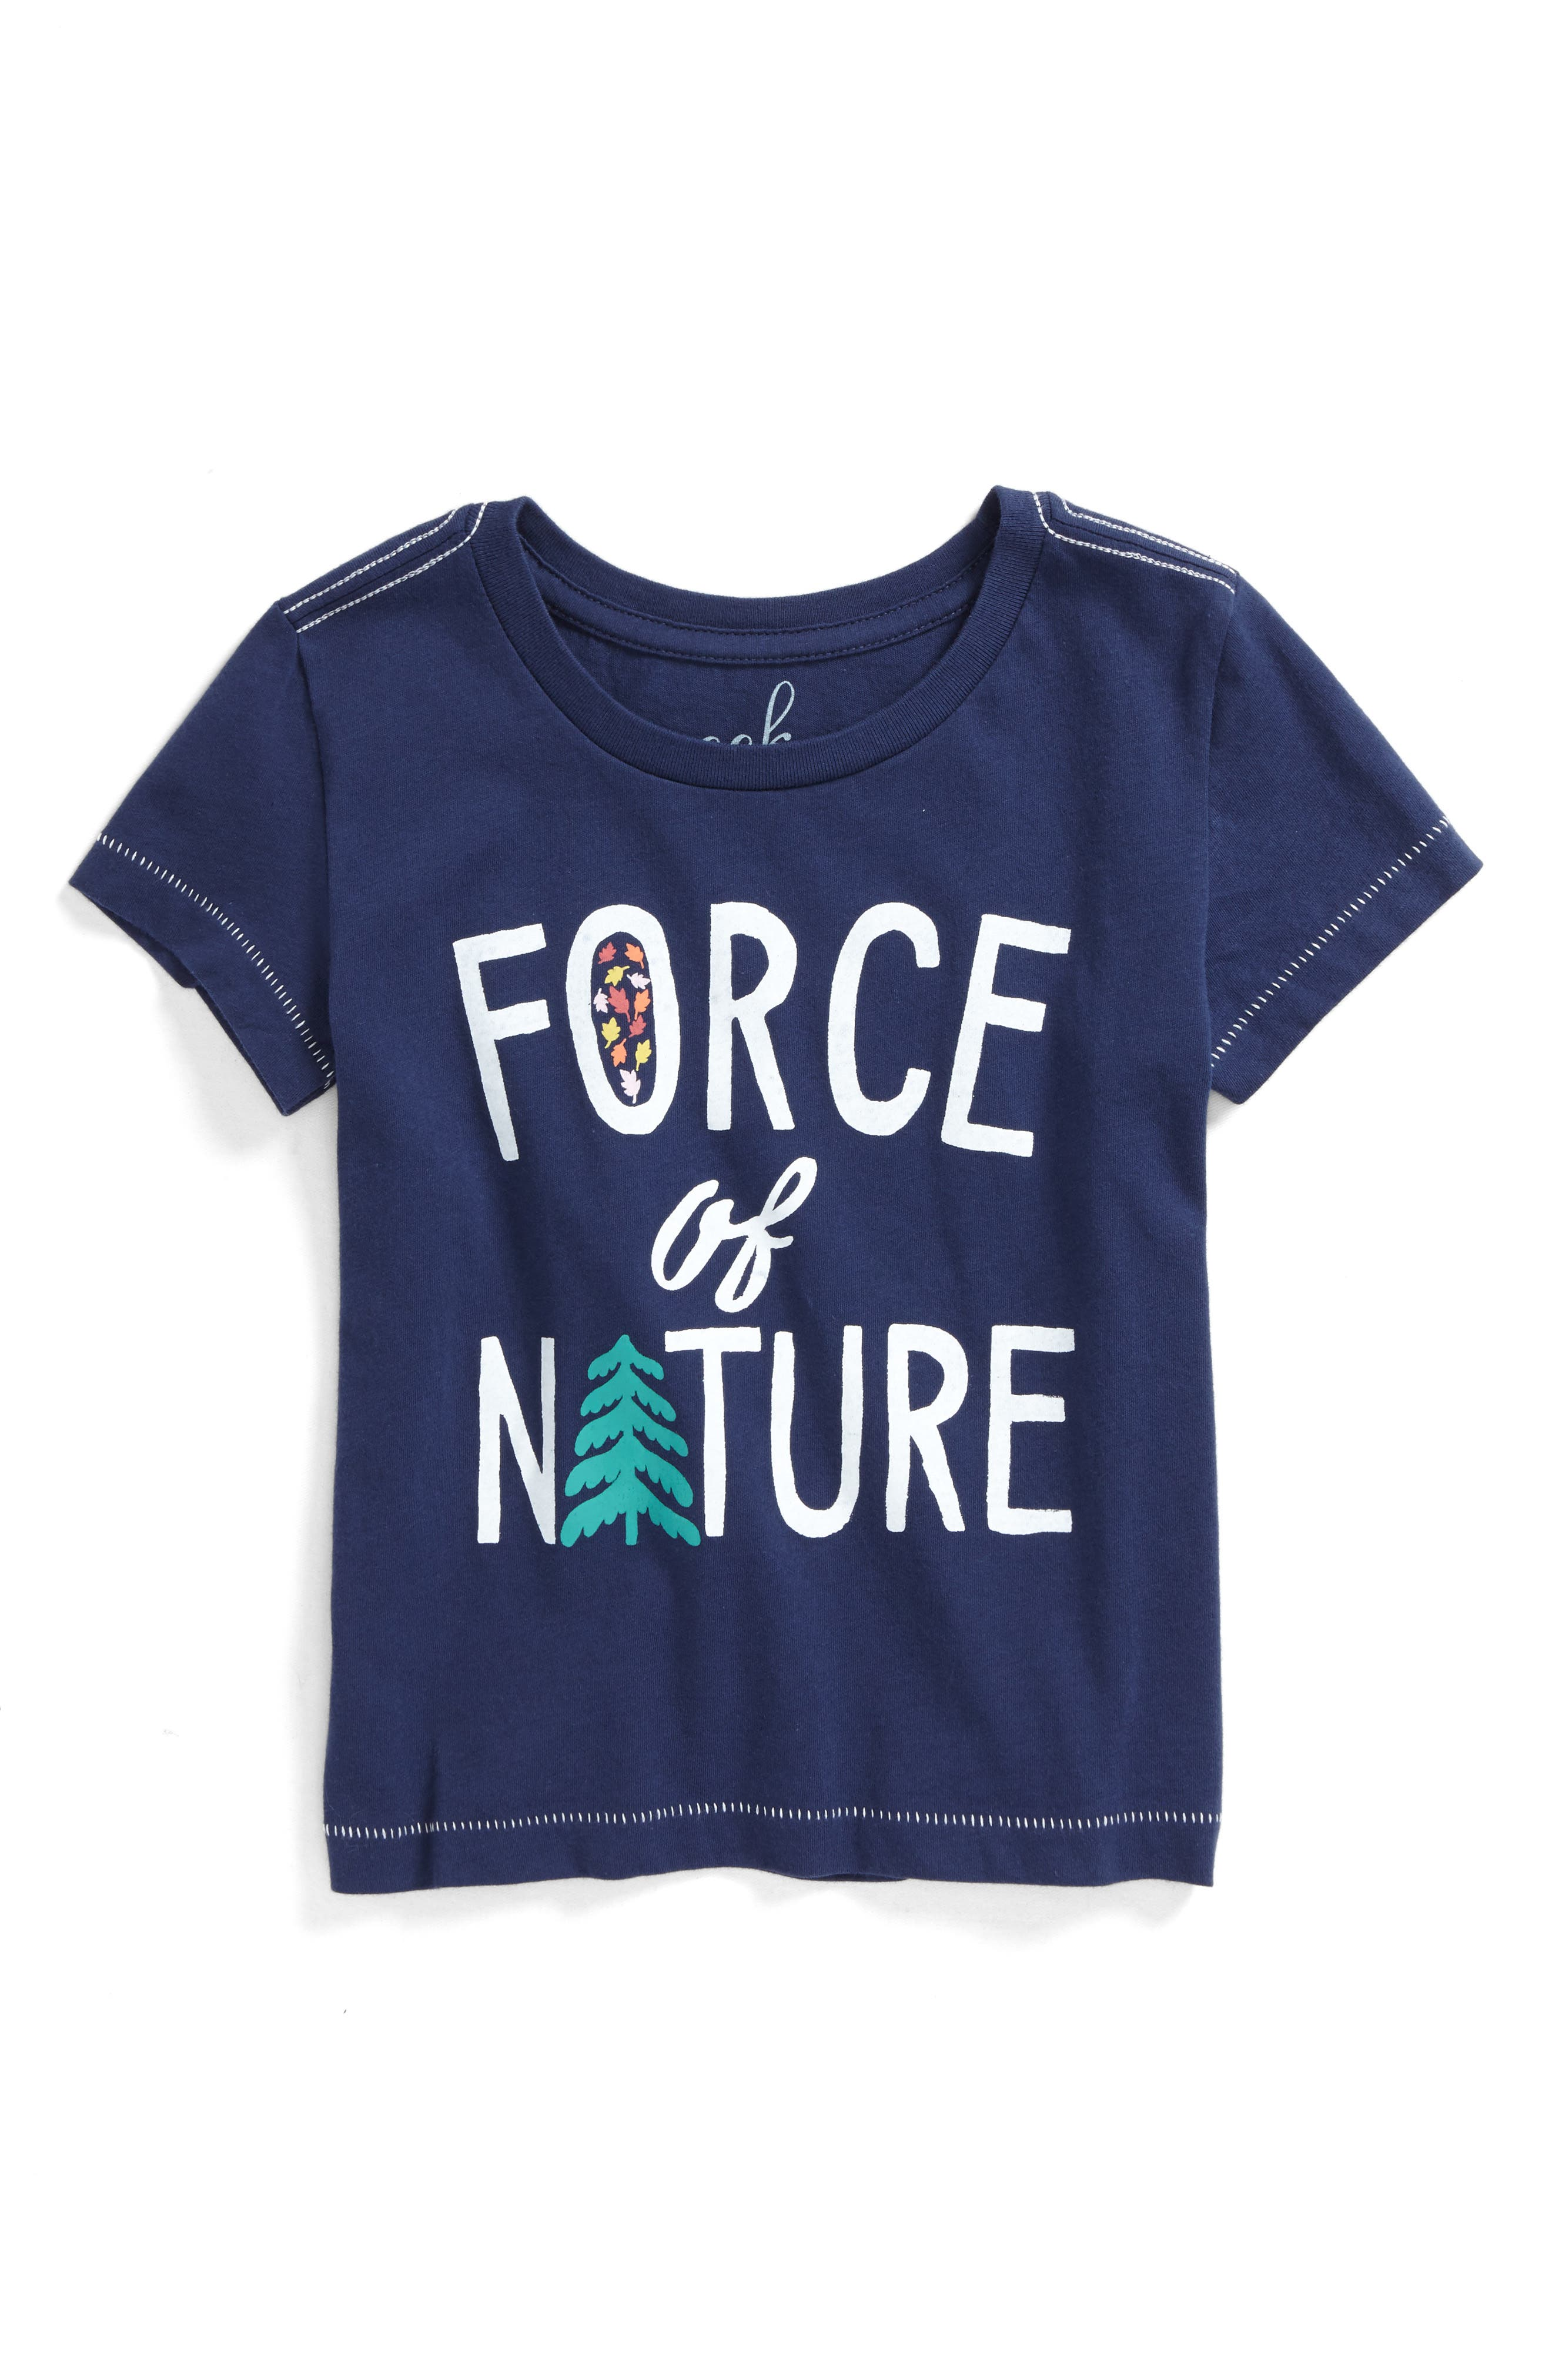 Force of Nature Graphic Tee,                             Main thumbnail 1, color,                             410